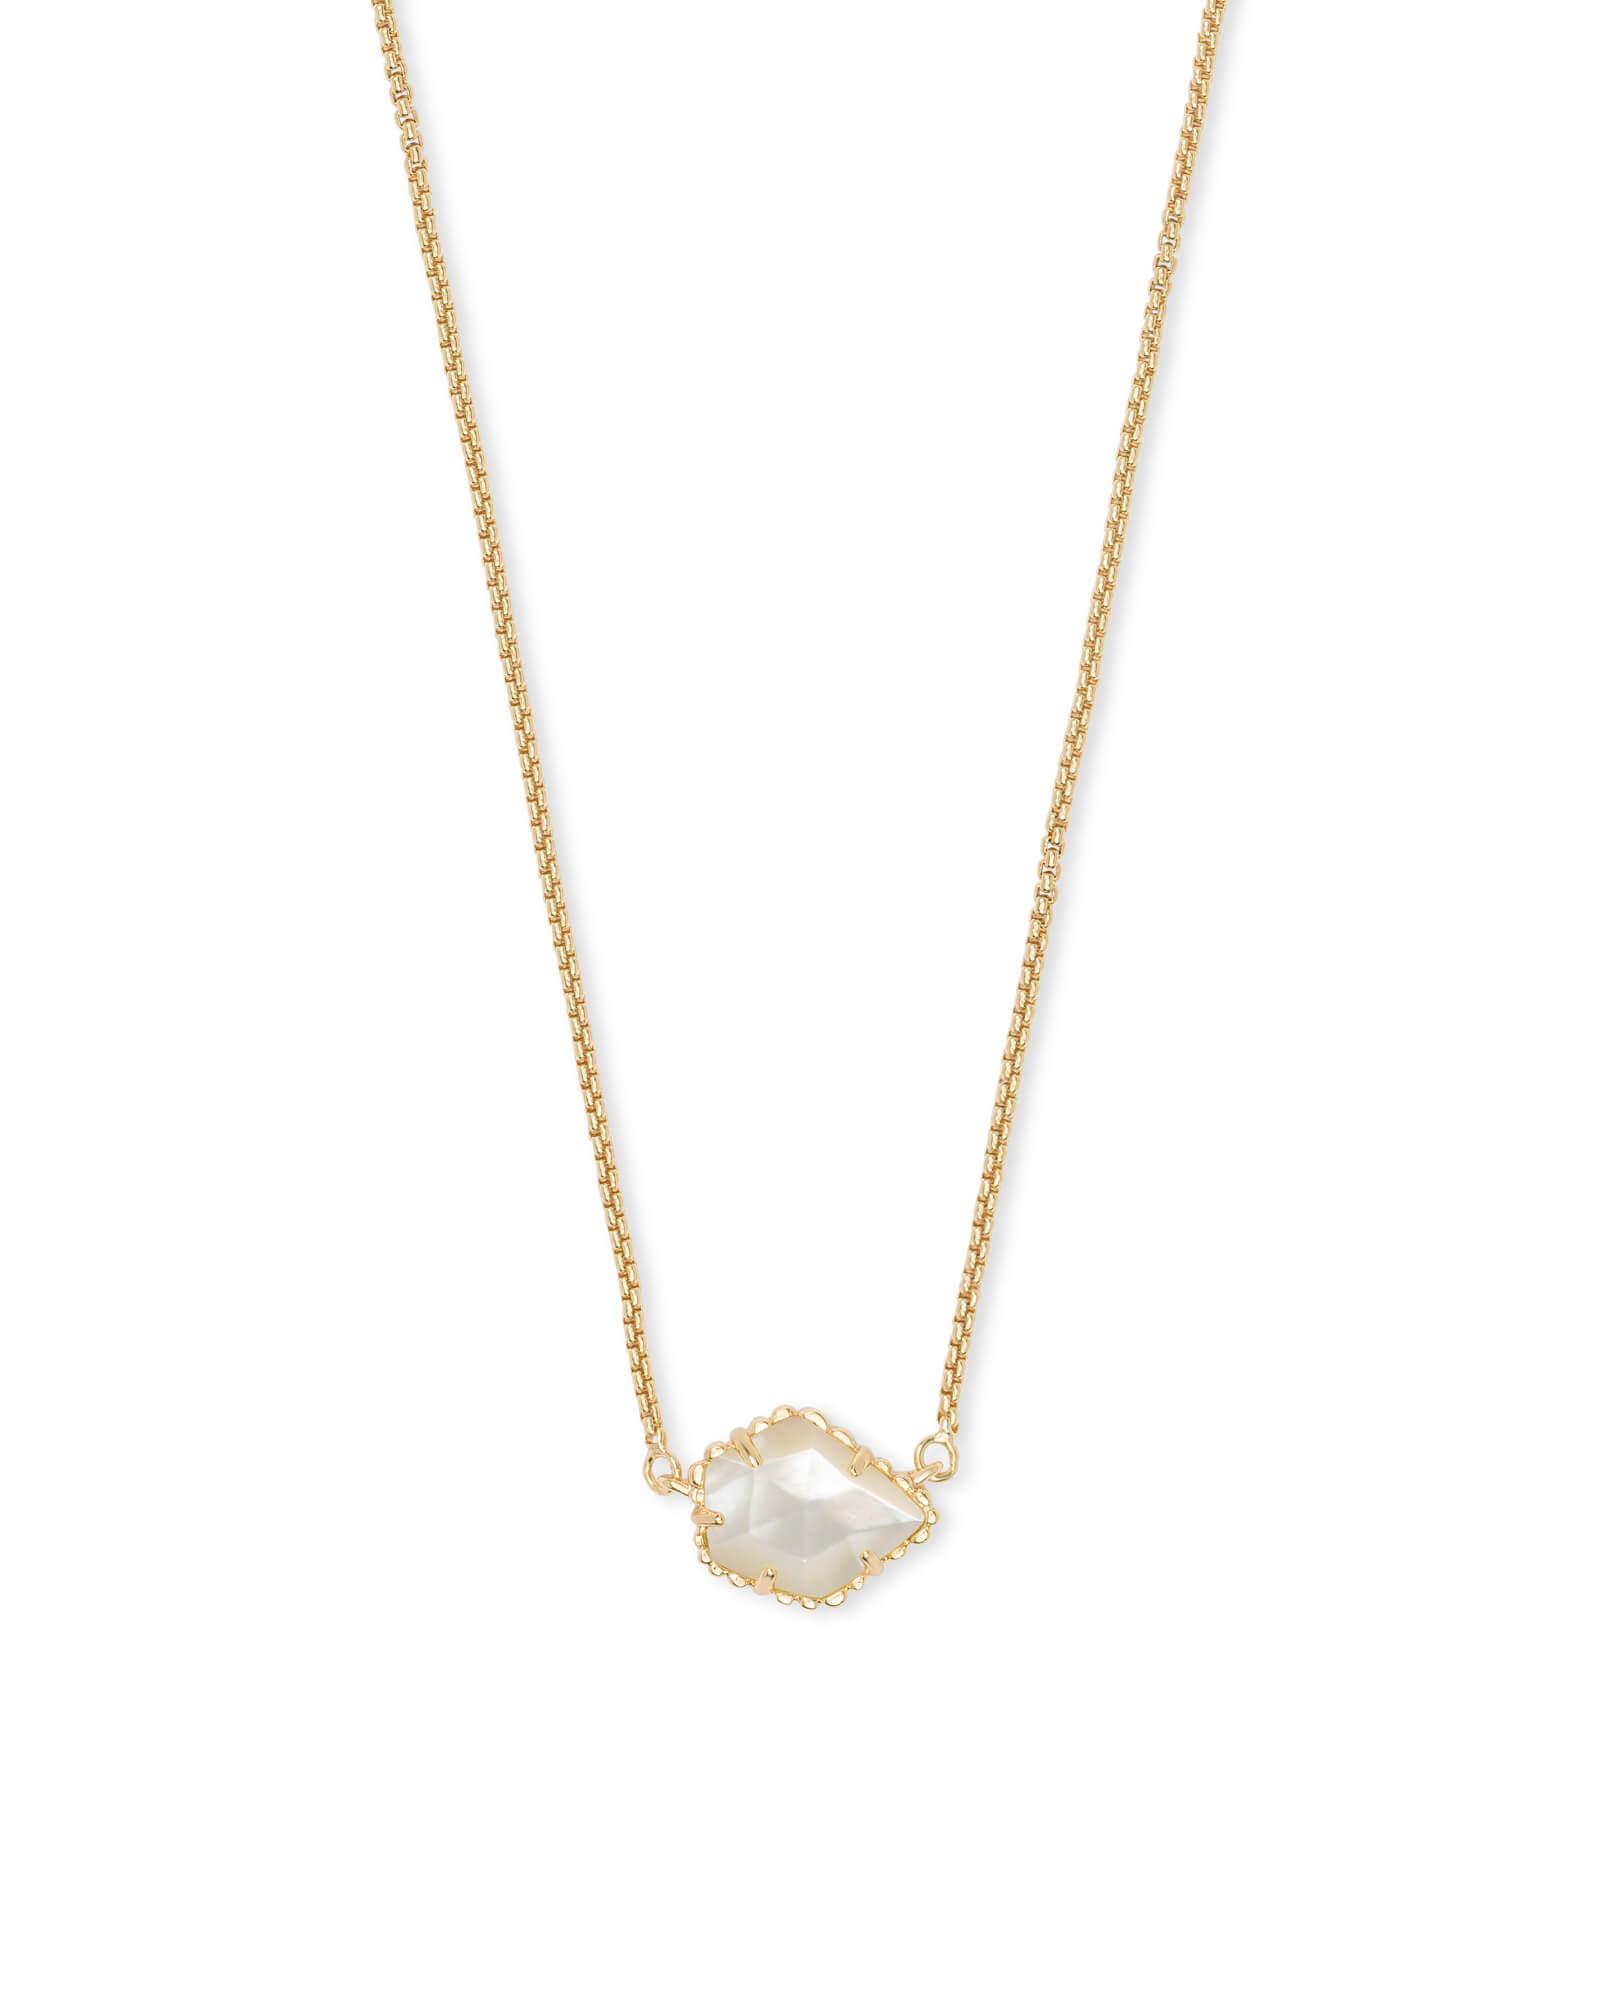 Tess Gold Pendant Necklace in Ivory Pearl